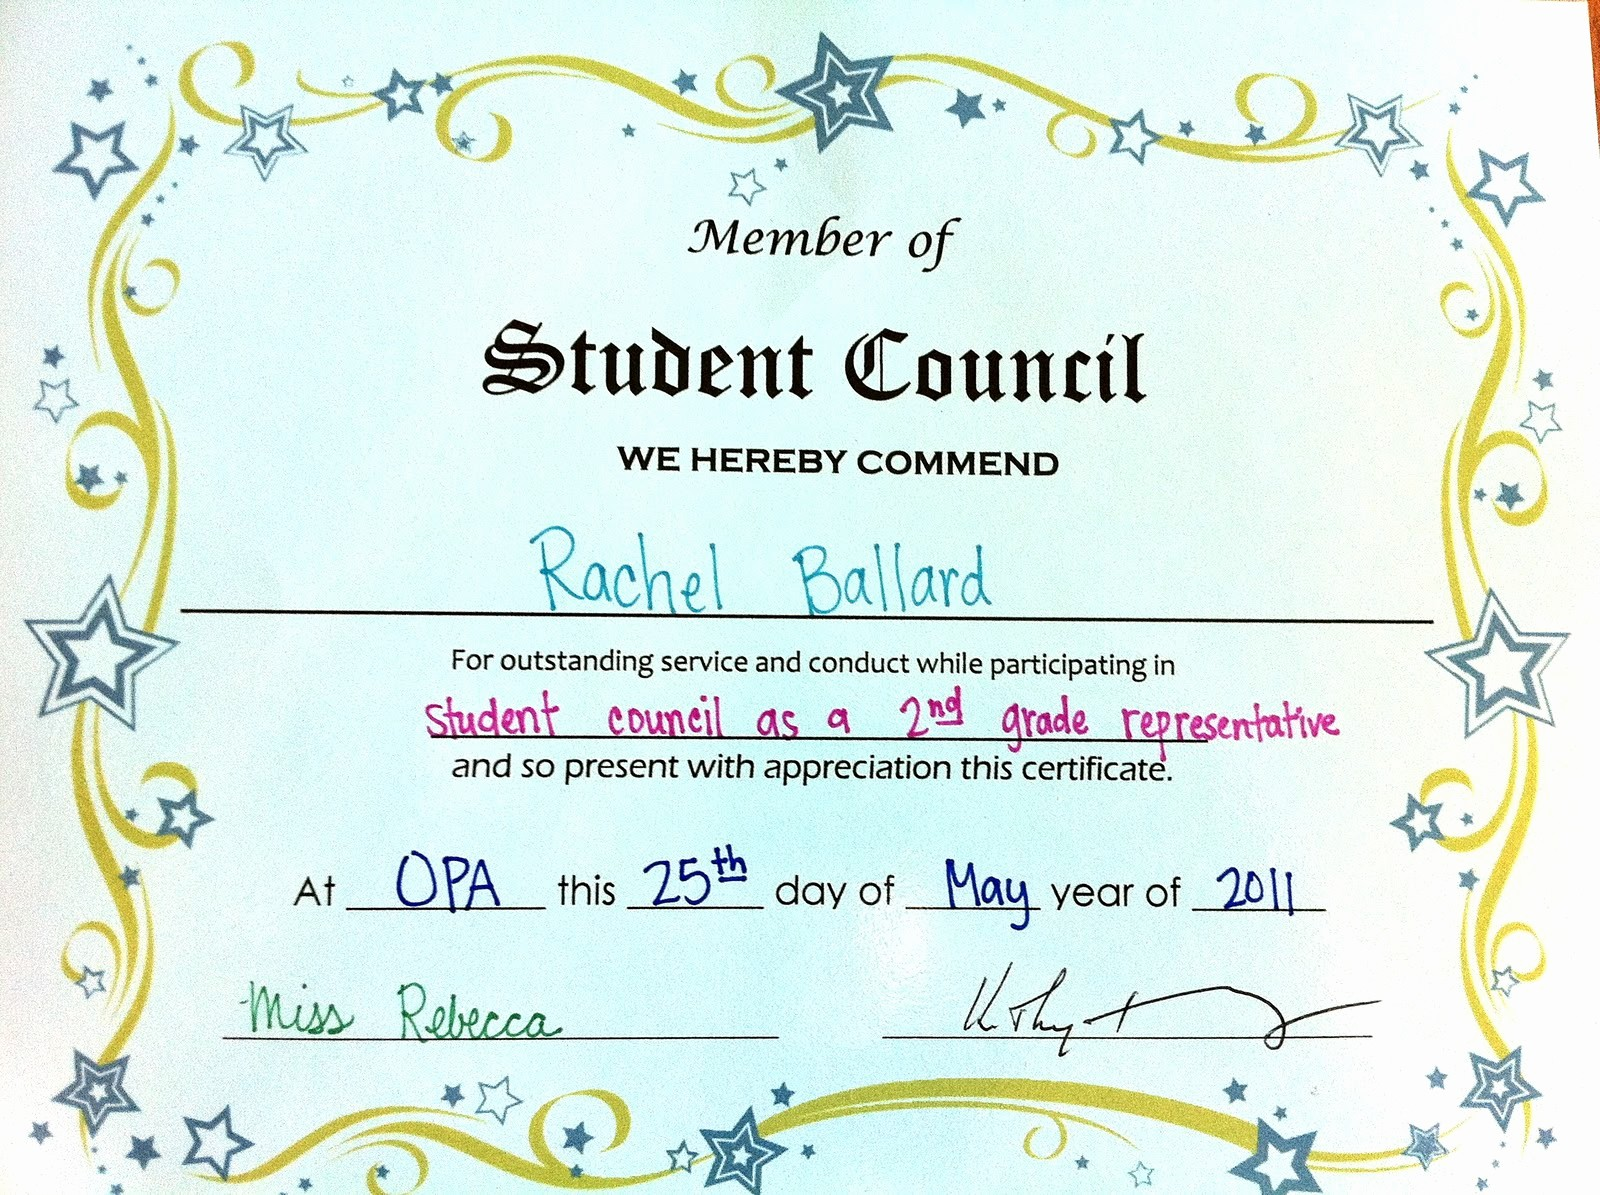 Student Council Certificate Template Free Fresh Student Council Certificates Printable